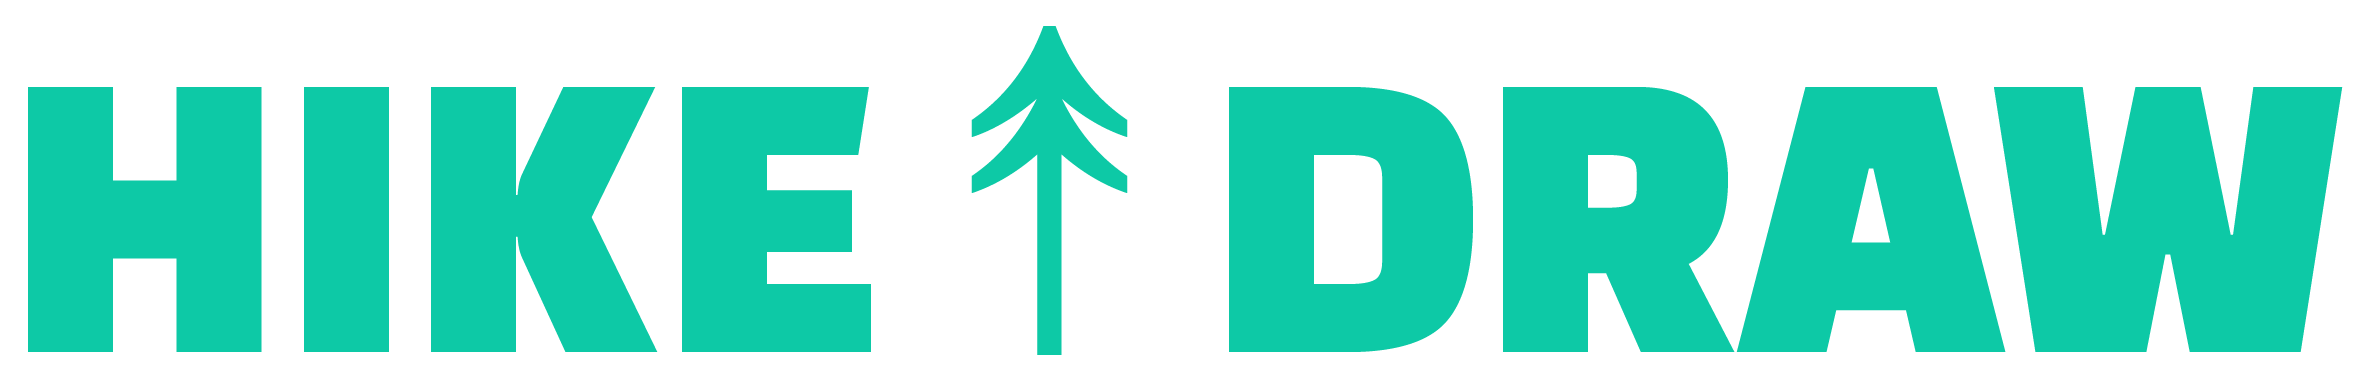 Hike and Draw Logo-Green